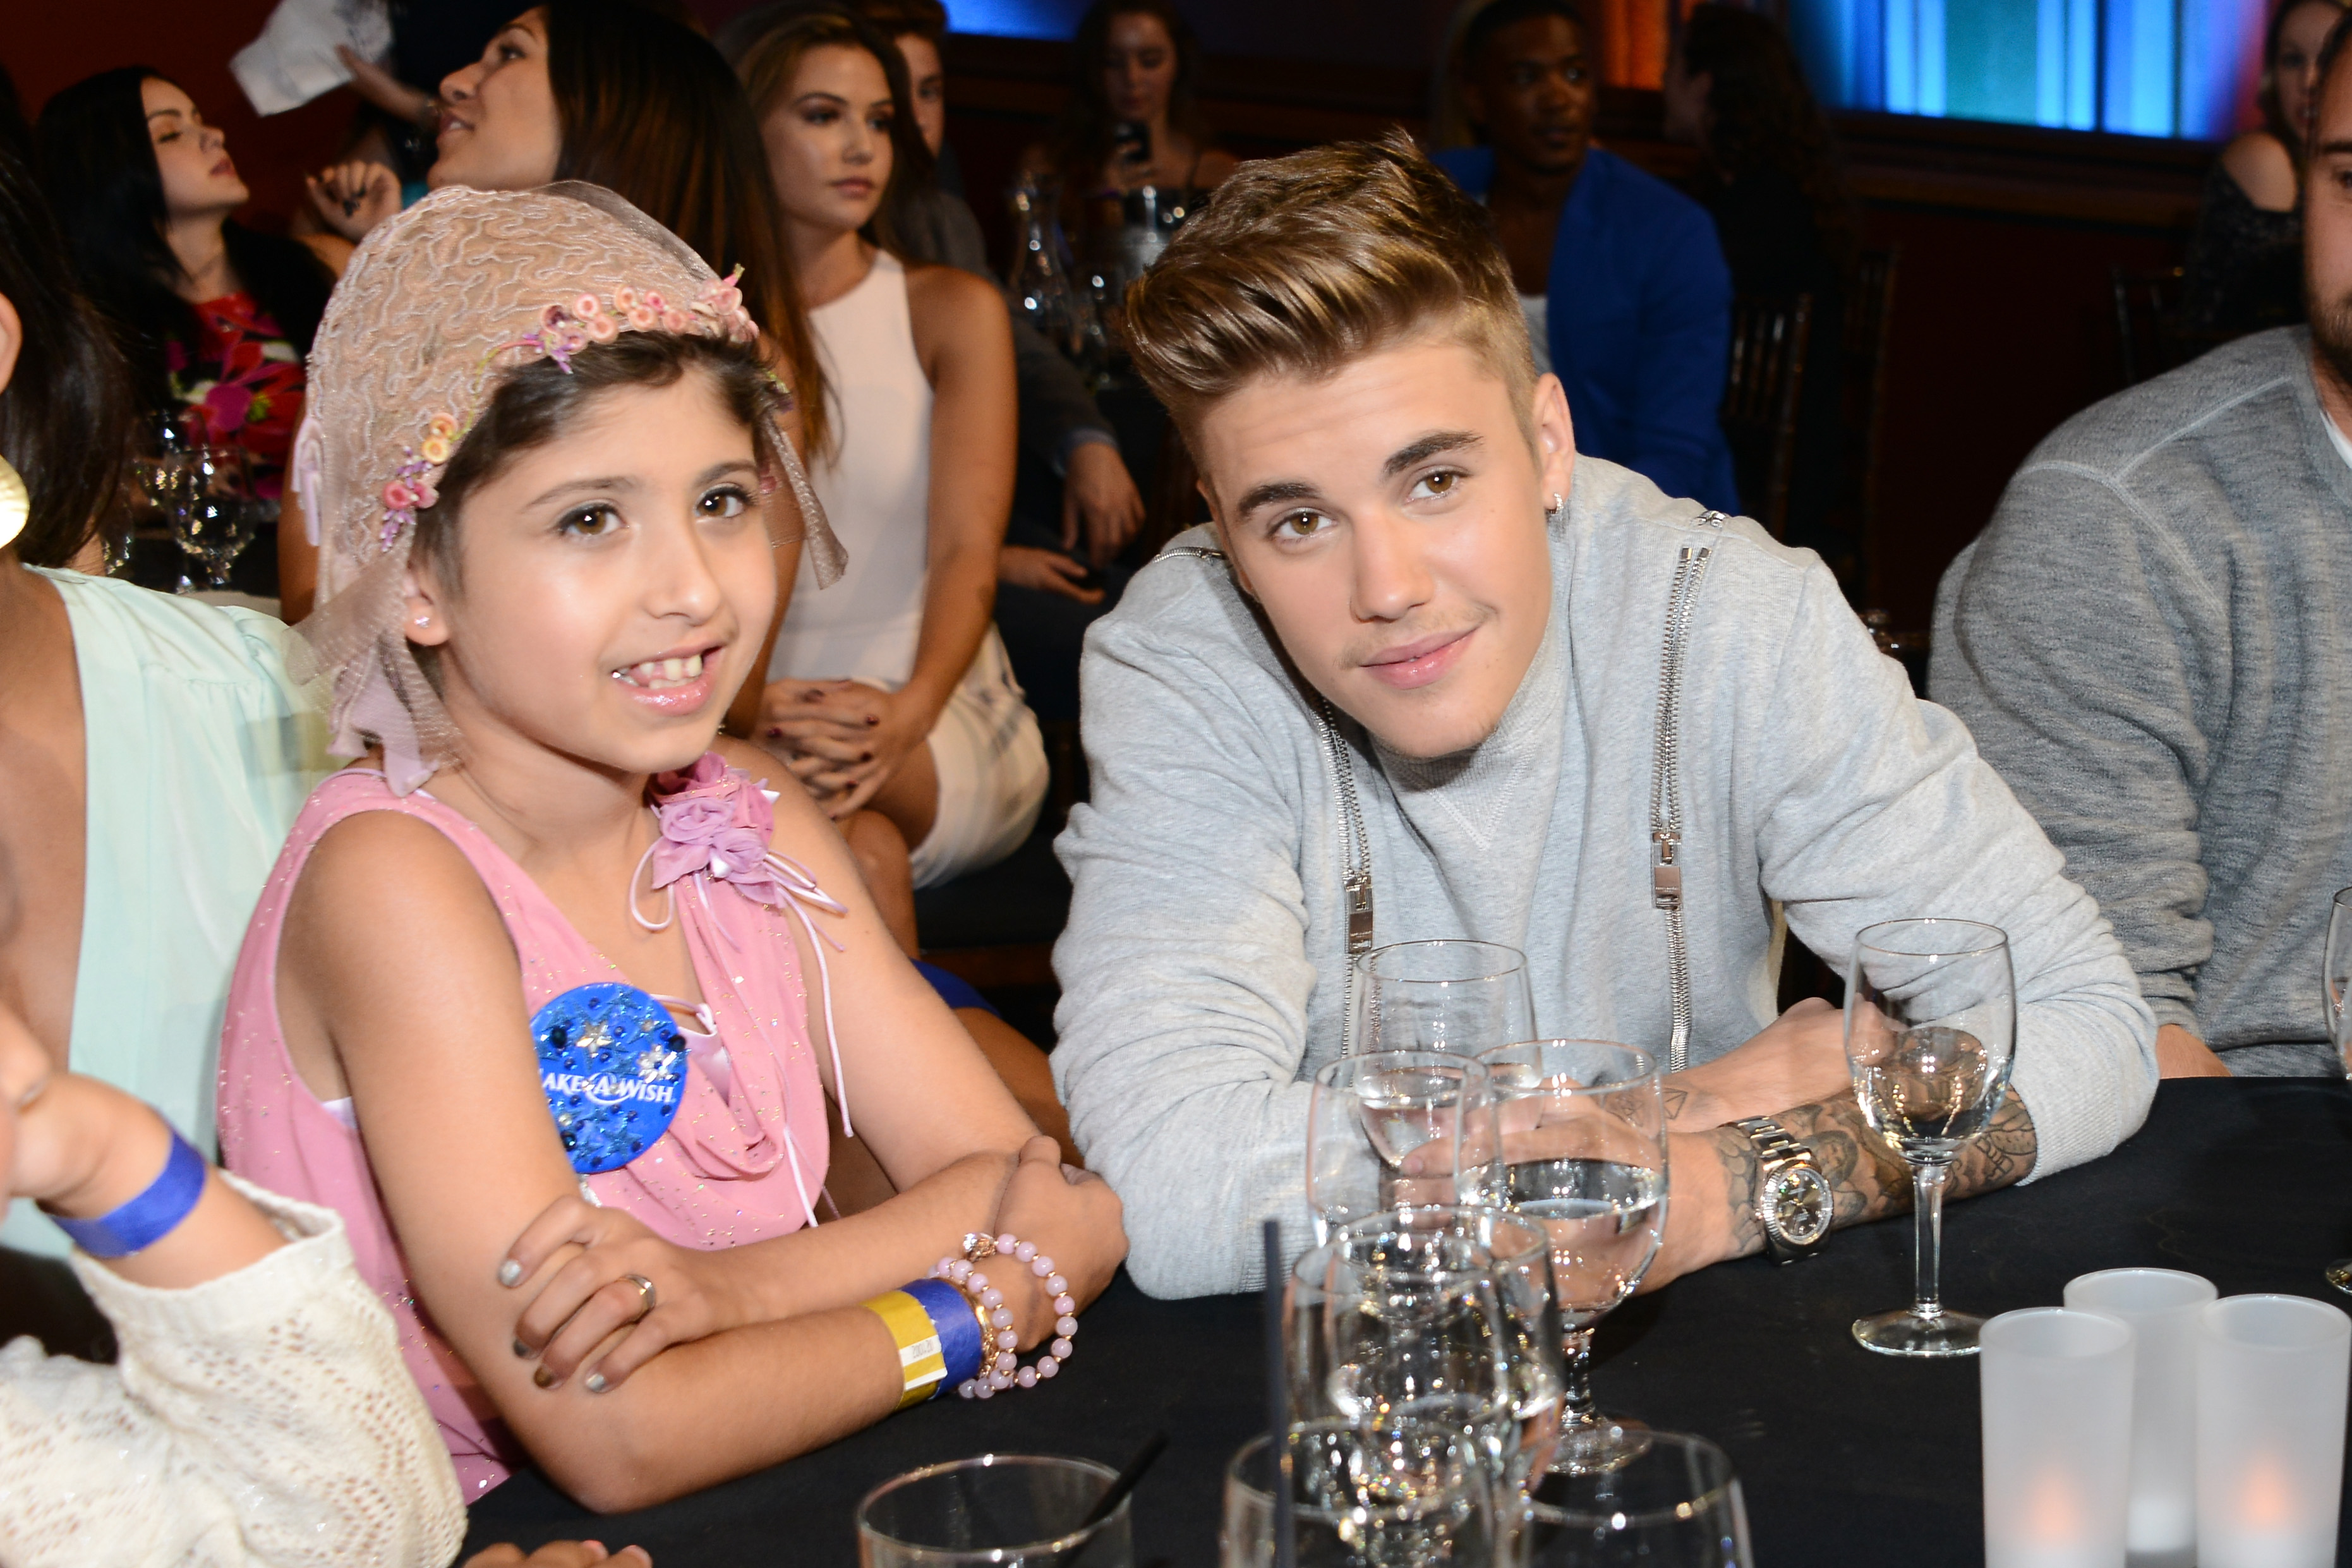 Justin Bieber Takes Fan As Date To Awards Show In Another Possible Do Not Need Want The Kill Switch Be Illuminated When Attempt Rehabilitate His Image